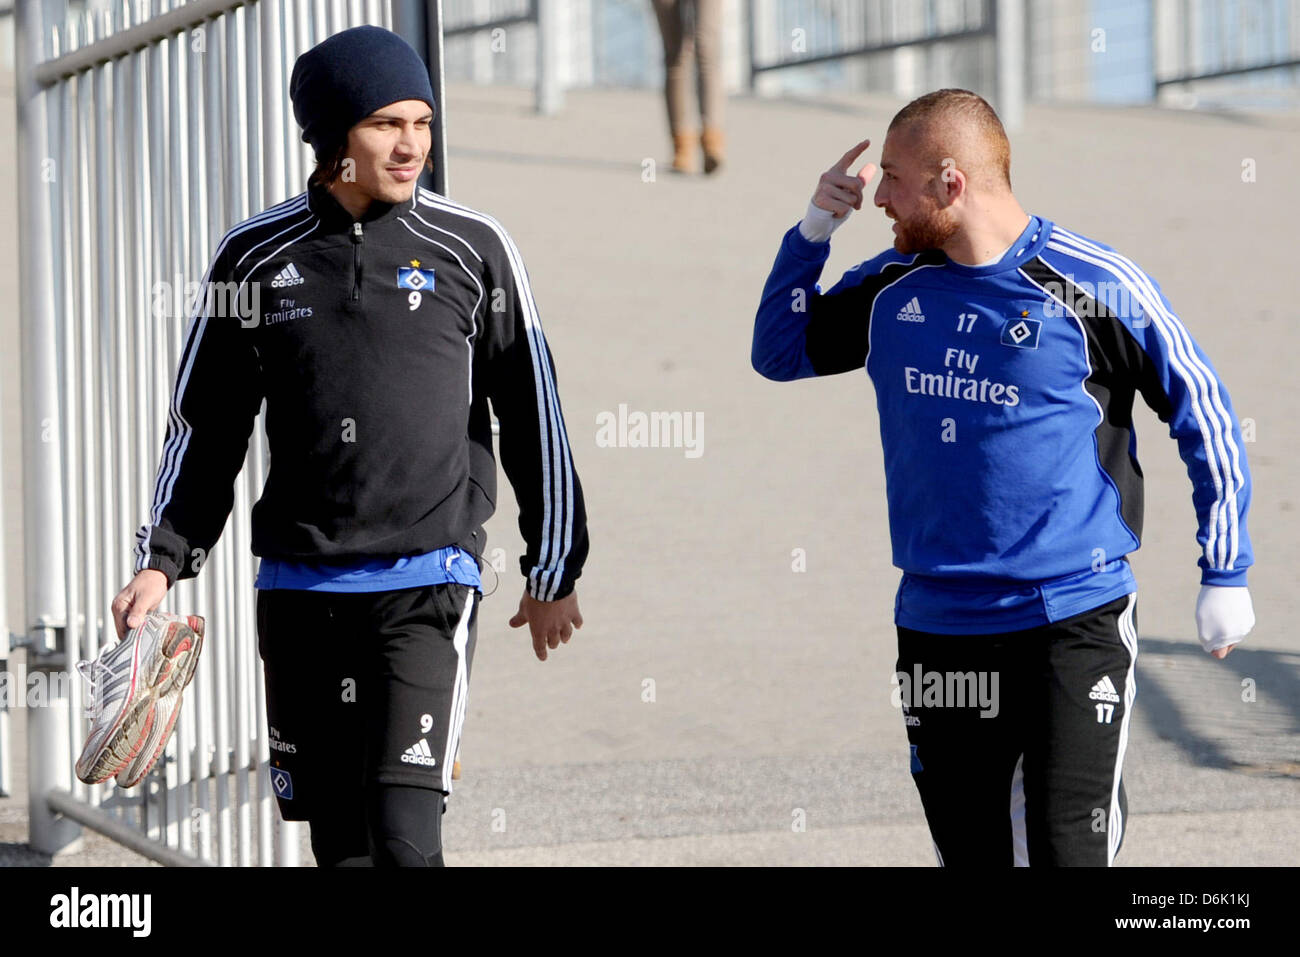 Hamburg's Paolo Guerrero and Goekhan Toere (R) talk on their way to a training session of Bundesliga soccer - Stock Image